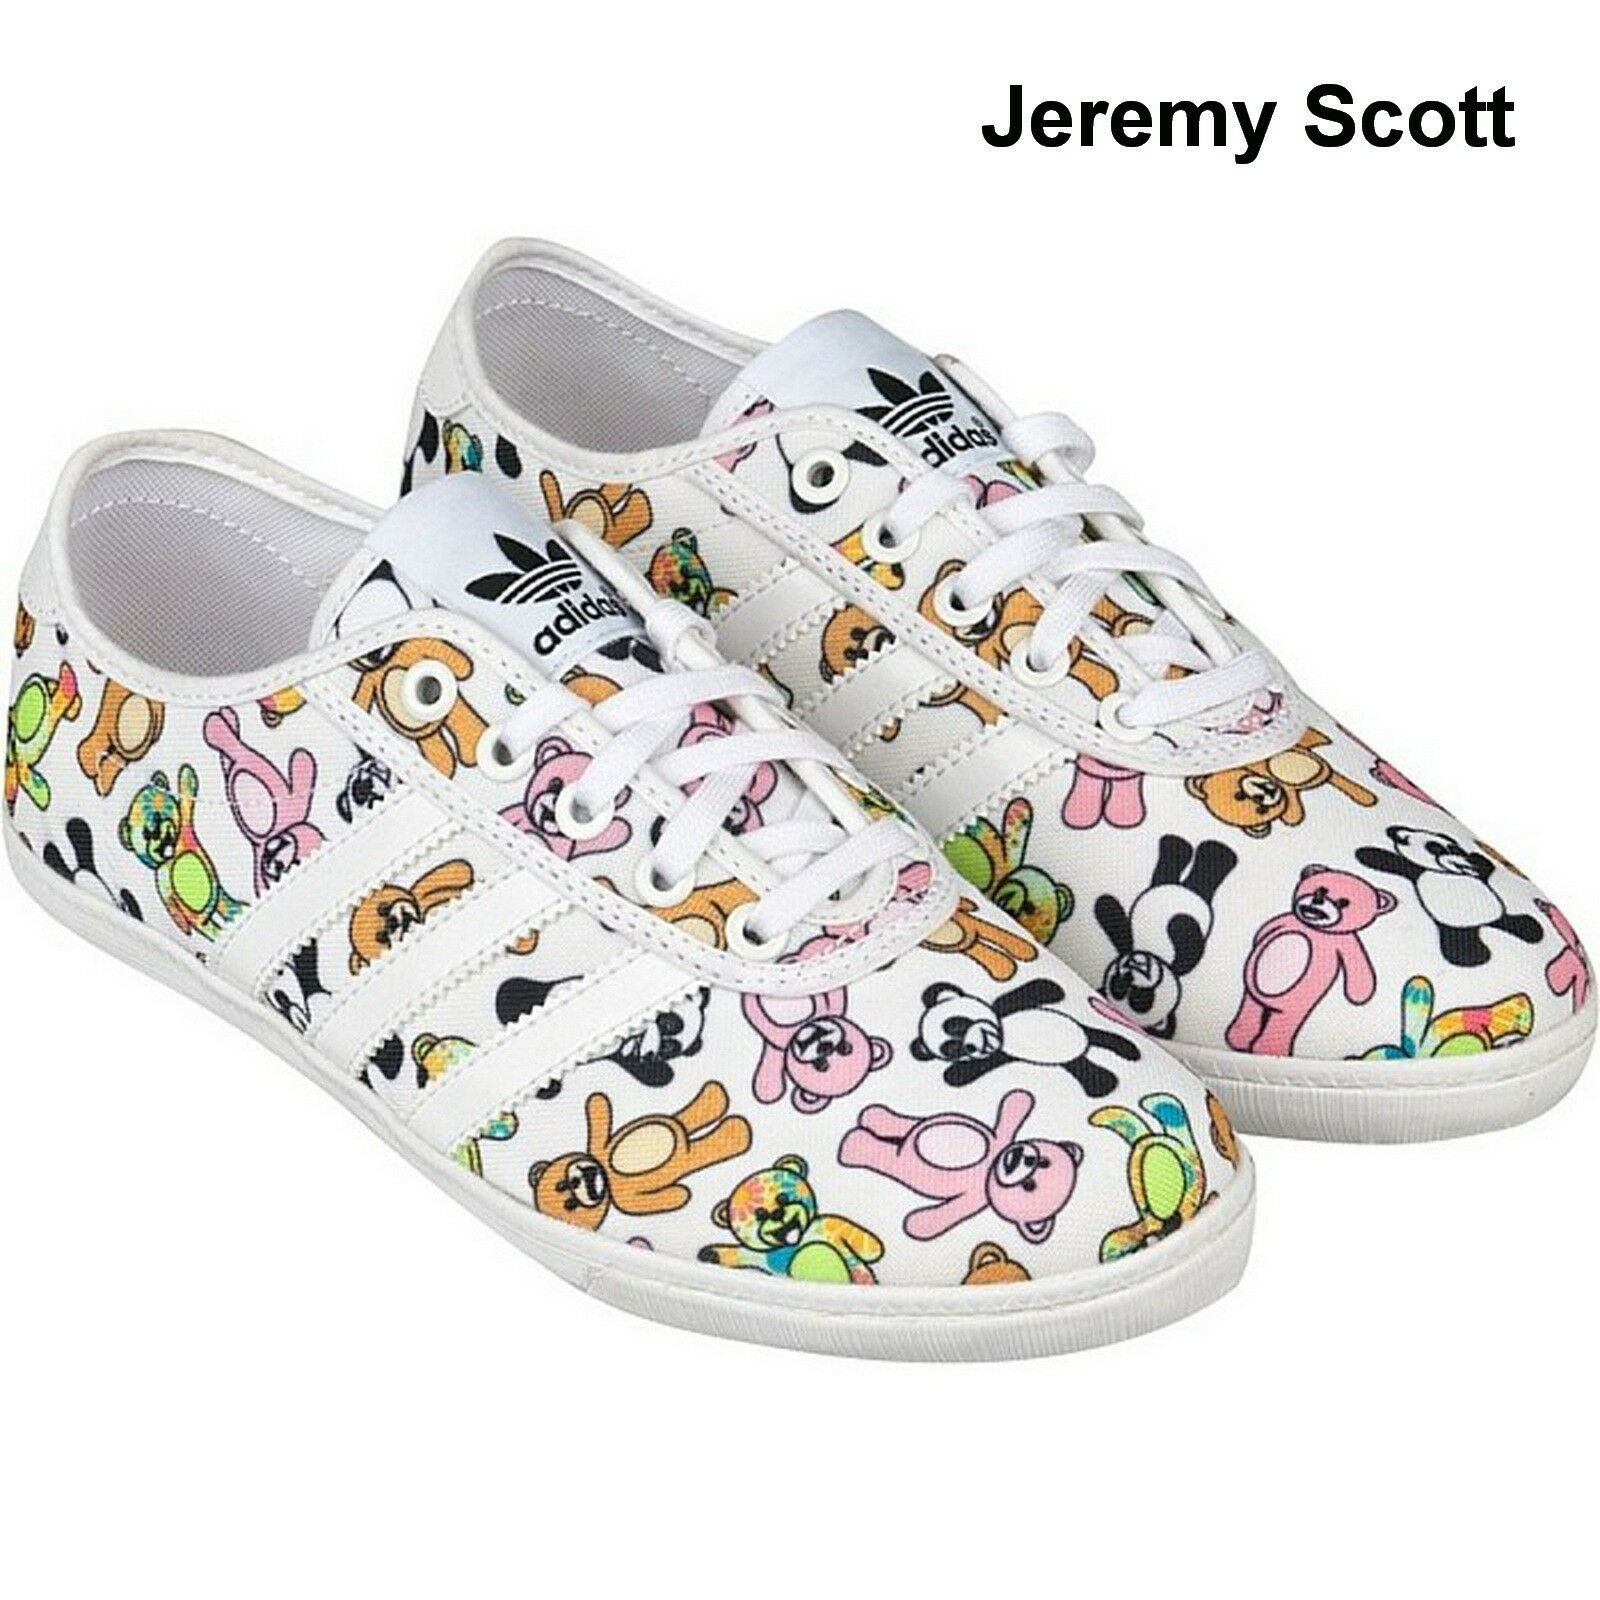 Adidas Jeremy Jeremy Adidas Scott P-Sole Originals Q23665 5ad747